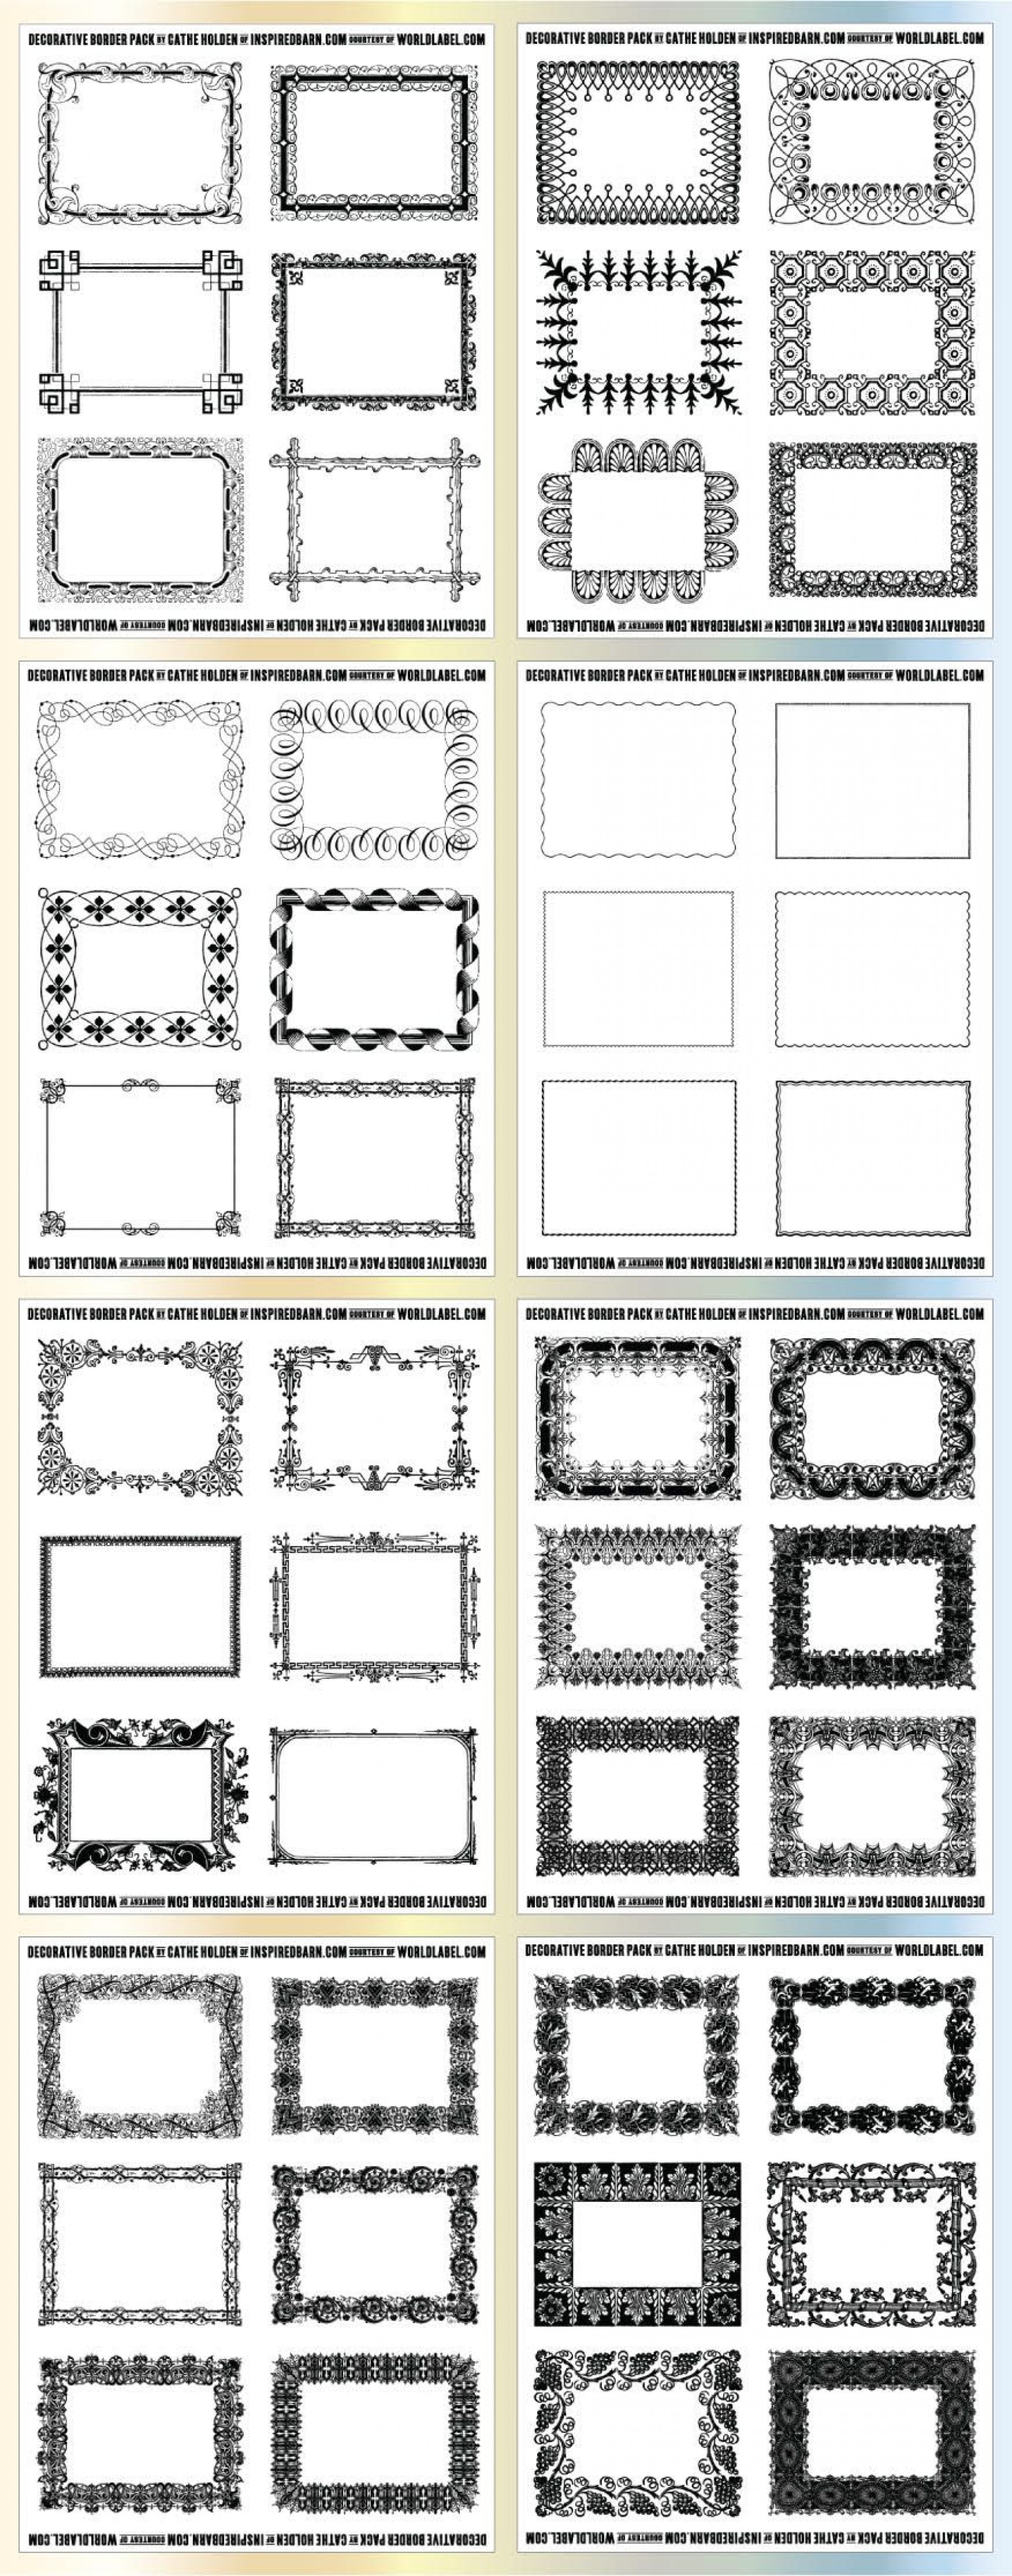 005 Incredible Free Label Maker Template For Mac Highest Clarity 1920